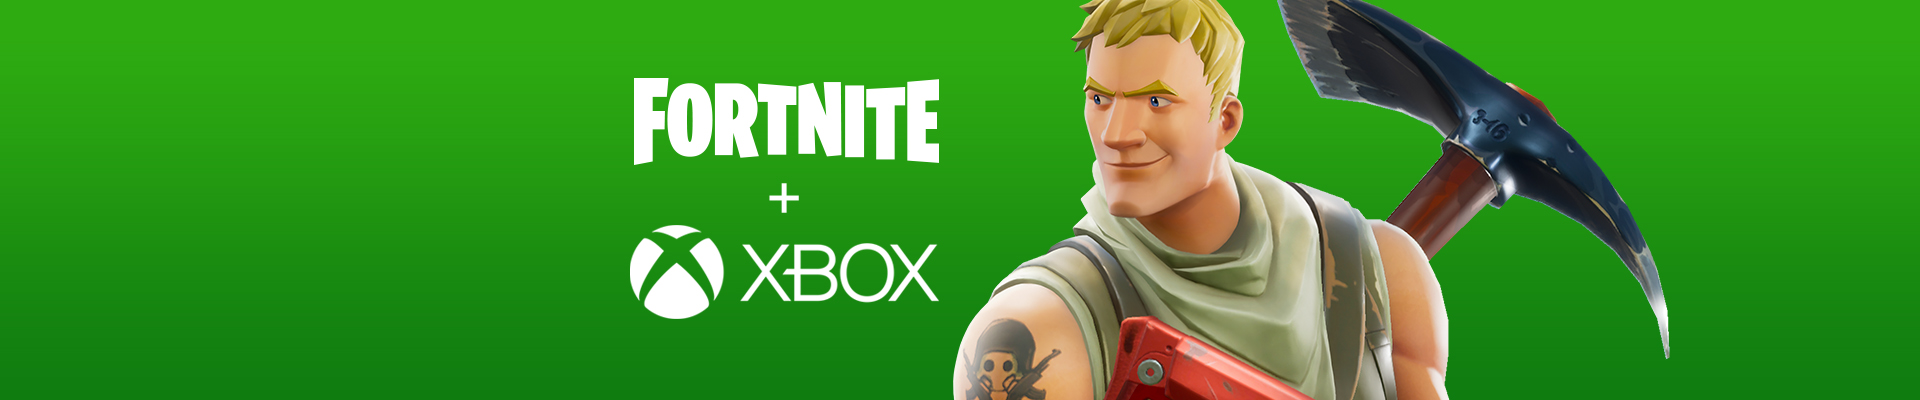 Fortnite Cross-Platform on Xbox One